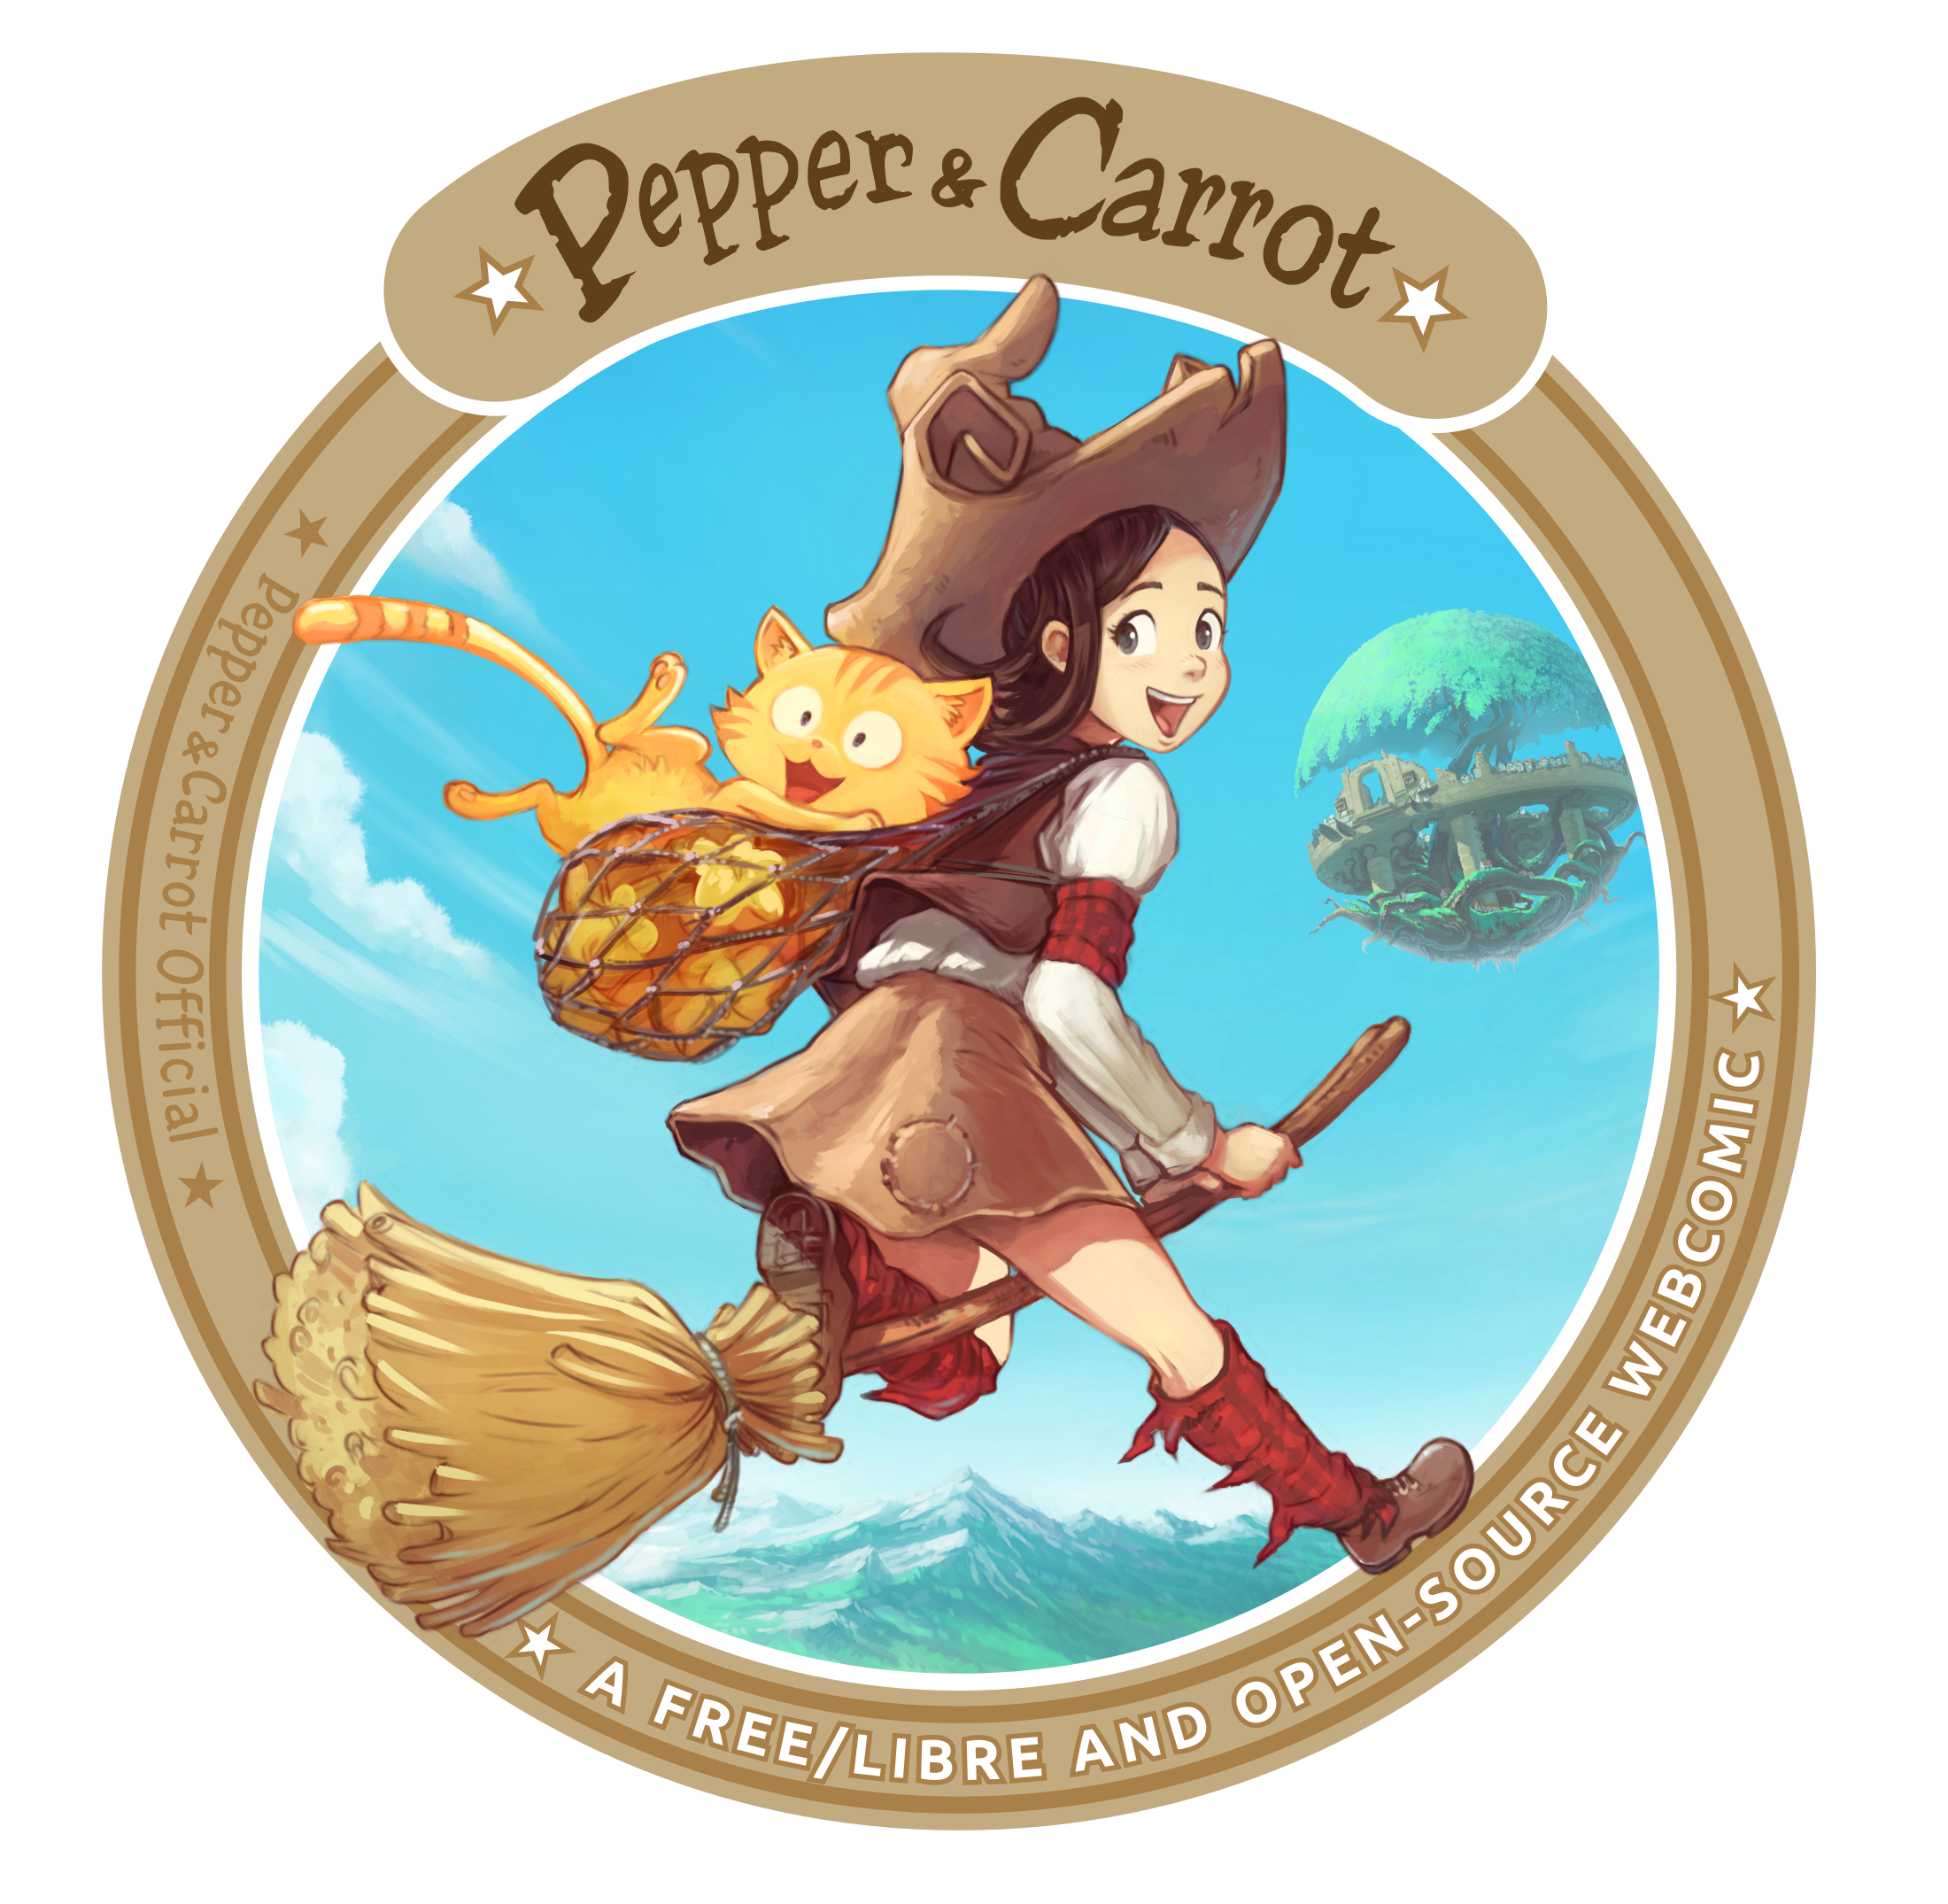 https://www.peppercarrot.com/0_sources/0ther/eshop/hi-res/2019-09-25_peppercarrot-eshop_by-David-Revoy.png